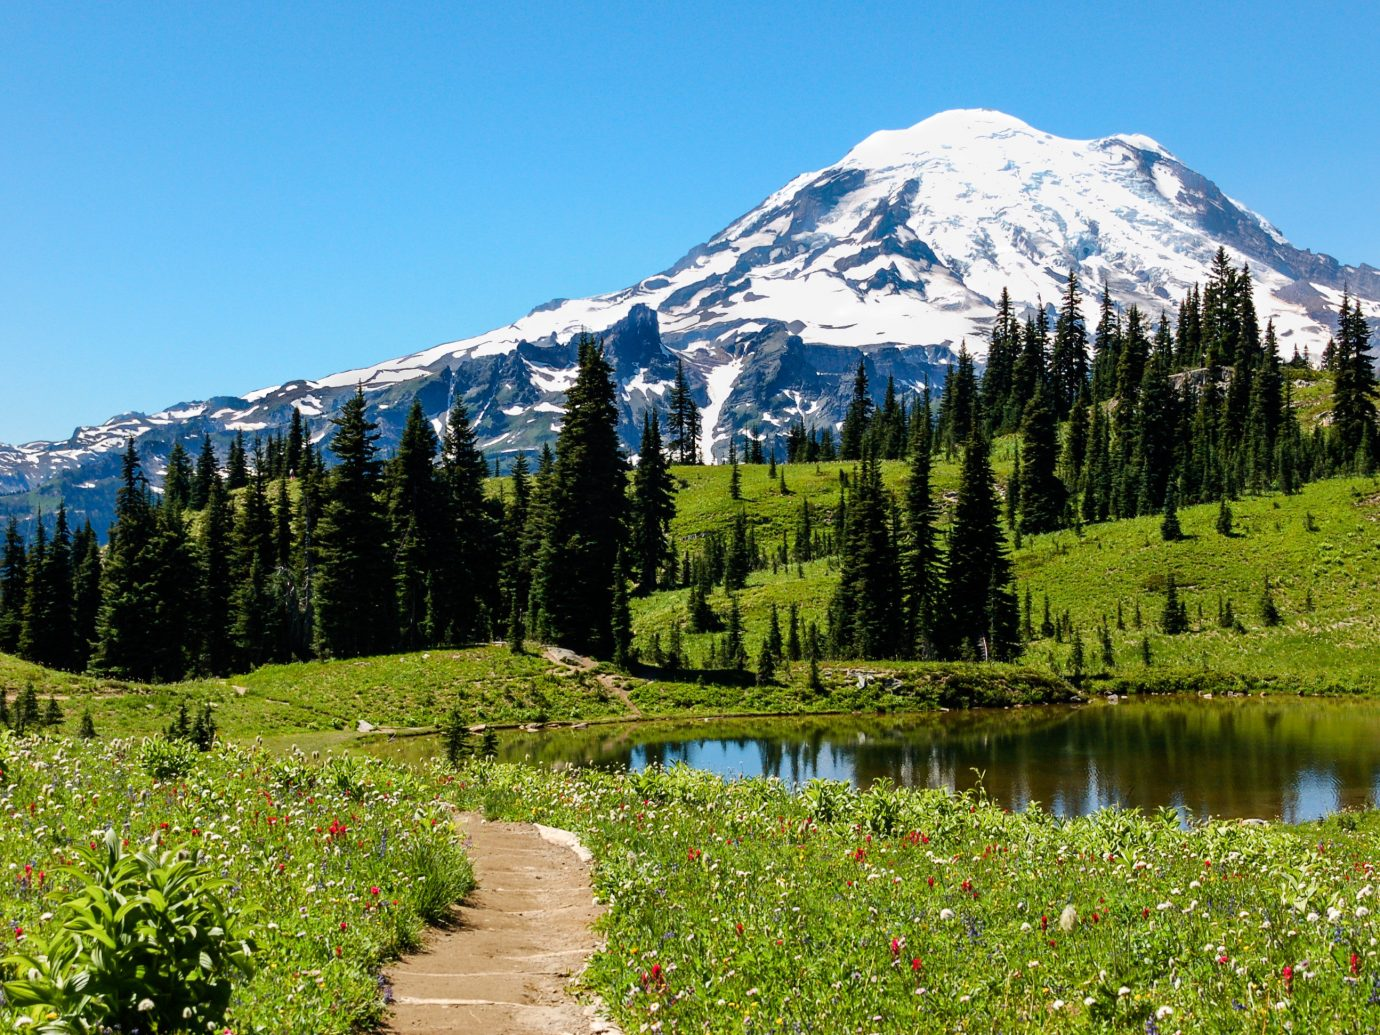 Trip Ideas grass sky outdoor mountain tree Nature mountainous landforms mountain range wilderness geographical feature landform natural environment ecosystem field Lake meadow ridge alps fell landscape valley plateau pond mountain pass reflection walking park flower national park hillside surrounded lush